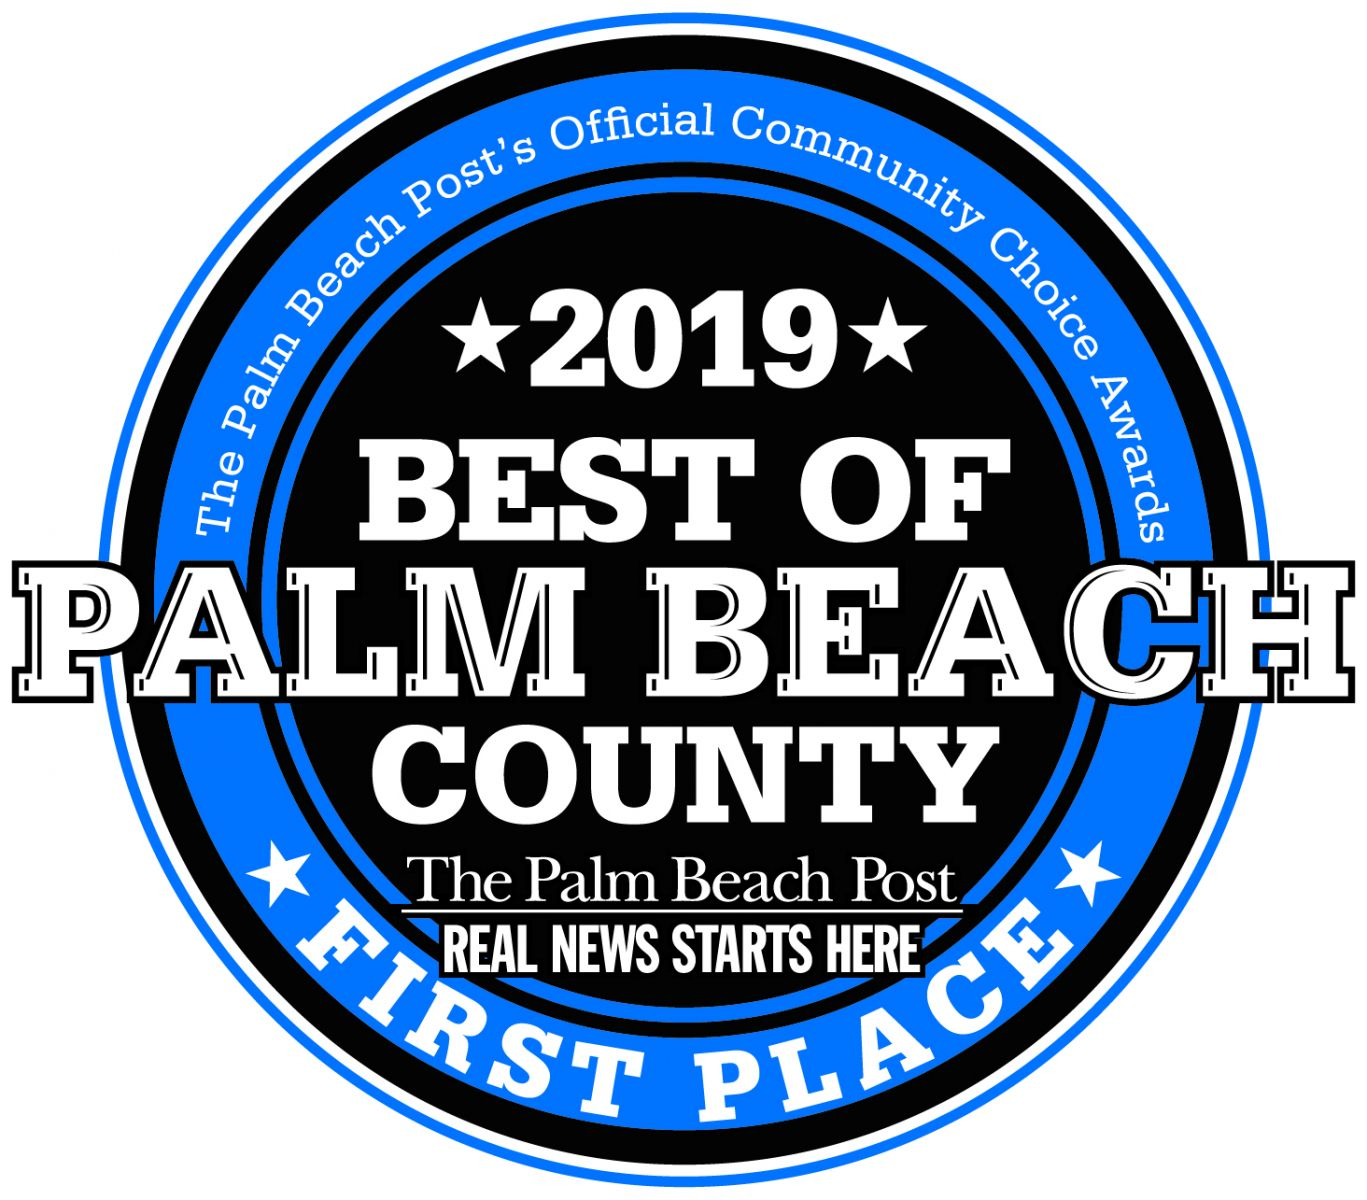 The Karp Law Firm has received the 2019 Palm Beach County Community Choice Award for BEST LAW FIRM!